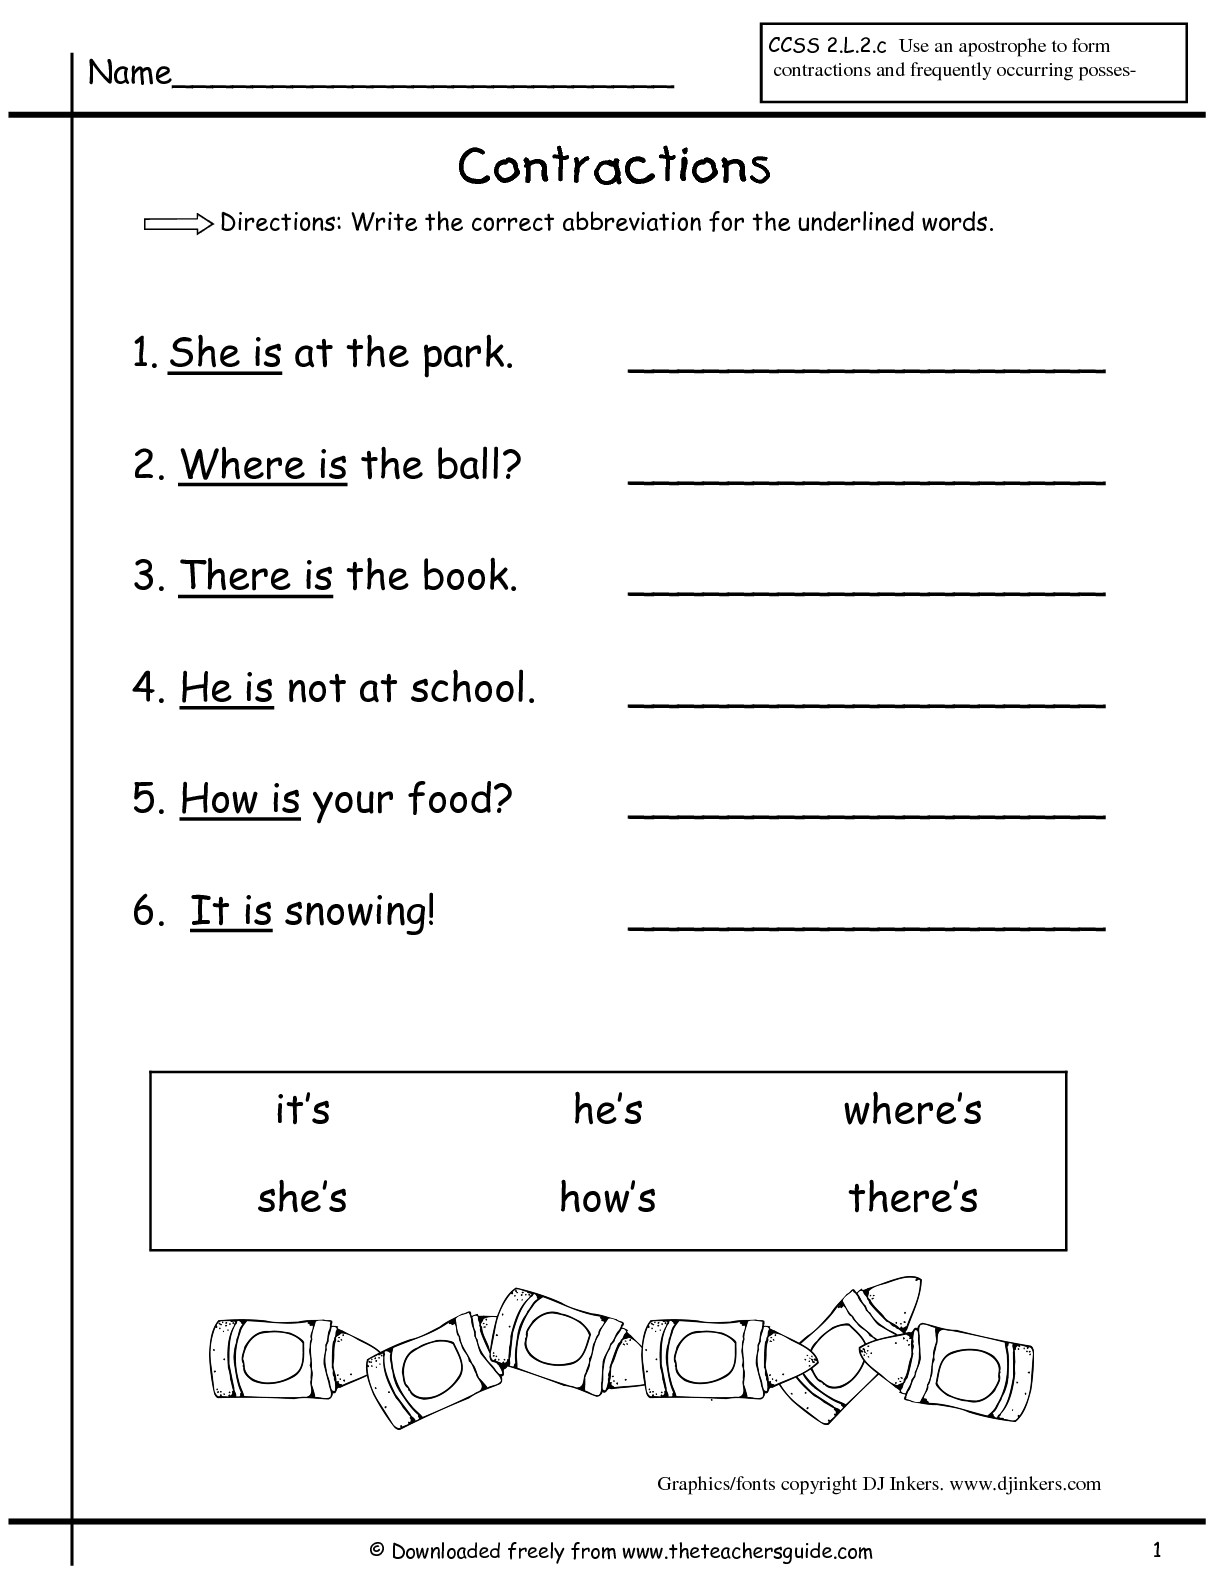 38 Contractions Worksheets for Improving Your Grammar ...